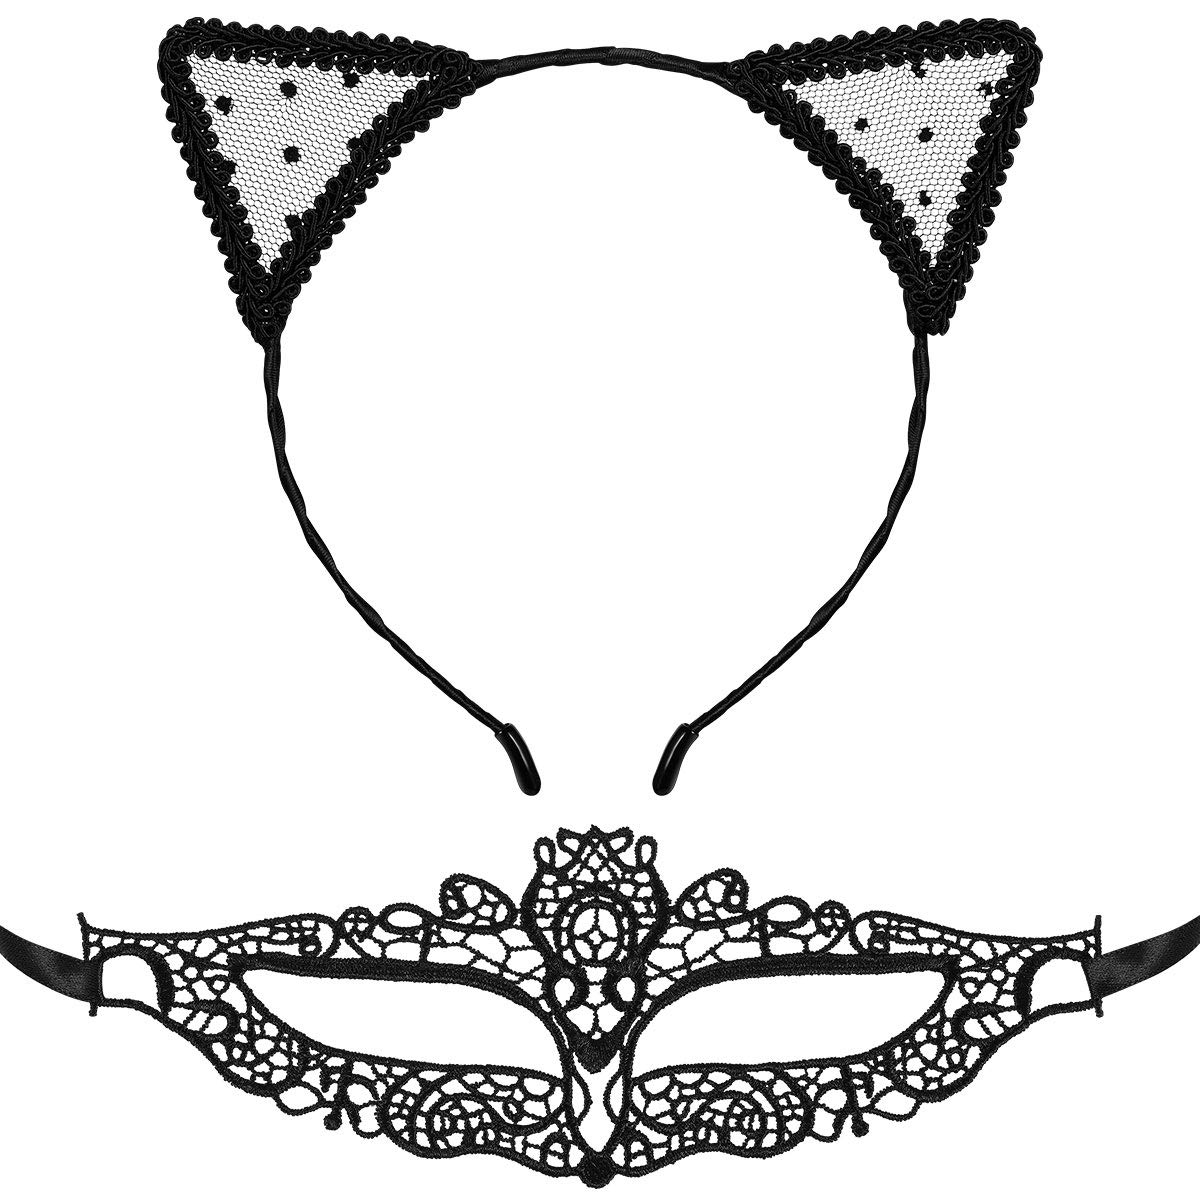 Lace Cat Ear Headband with Sexy Masquerade Mask for Women, Halloween Cosplay Cute Cat Costume Accessories (Black)